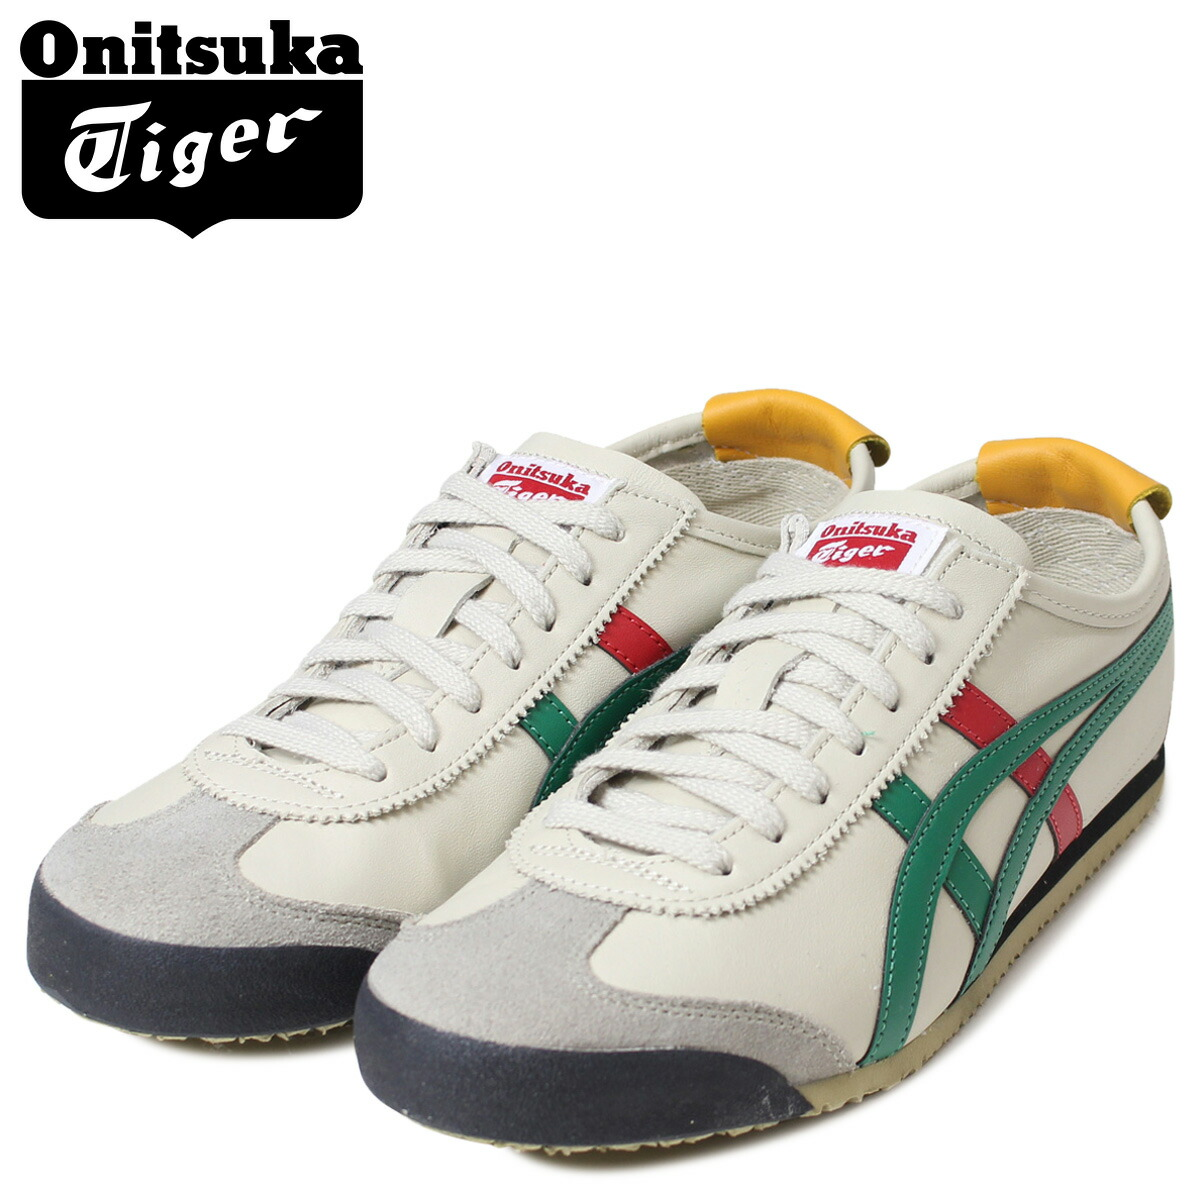 amazon limited style choose newest Onitsuka tiger Mexico 66 Onitsuka Tiger asics men gap Dis sneakers ASICS  MEXICO 66 THL202-1684 shoes are natural